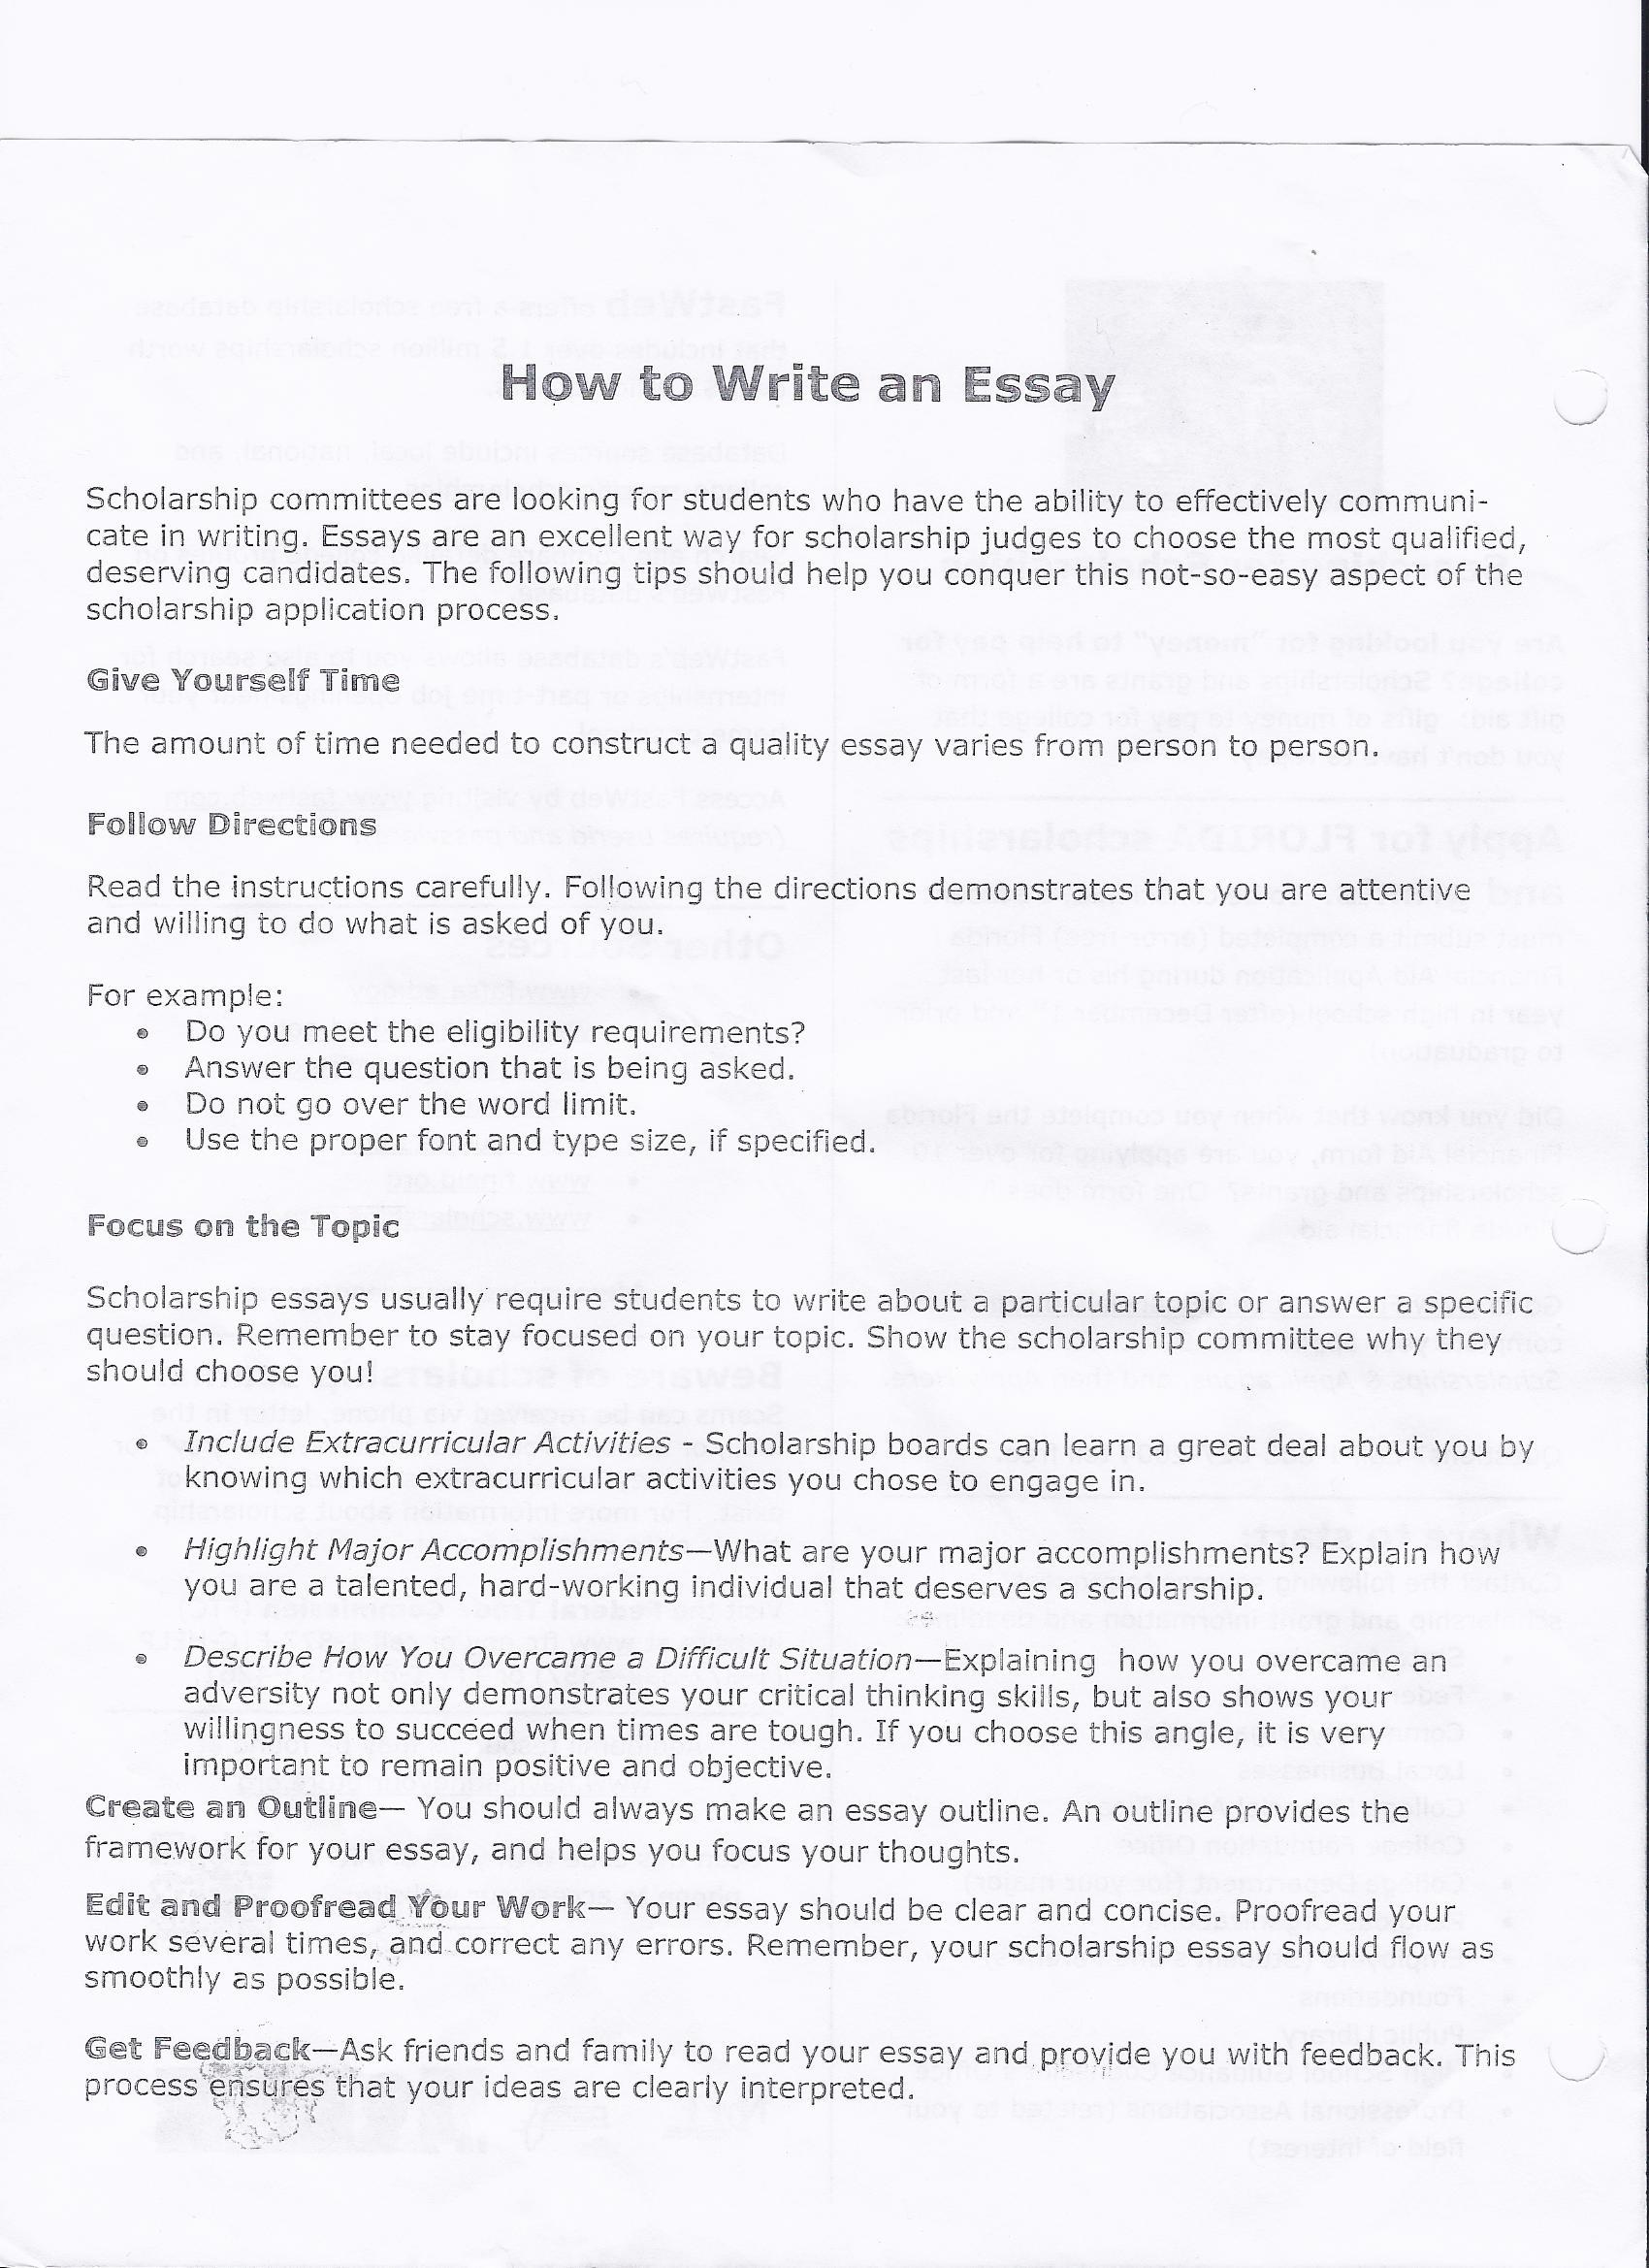 Title Vii Sex Discrimination Definition Essay